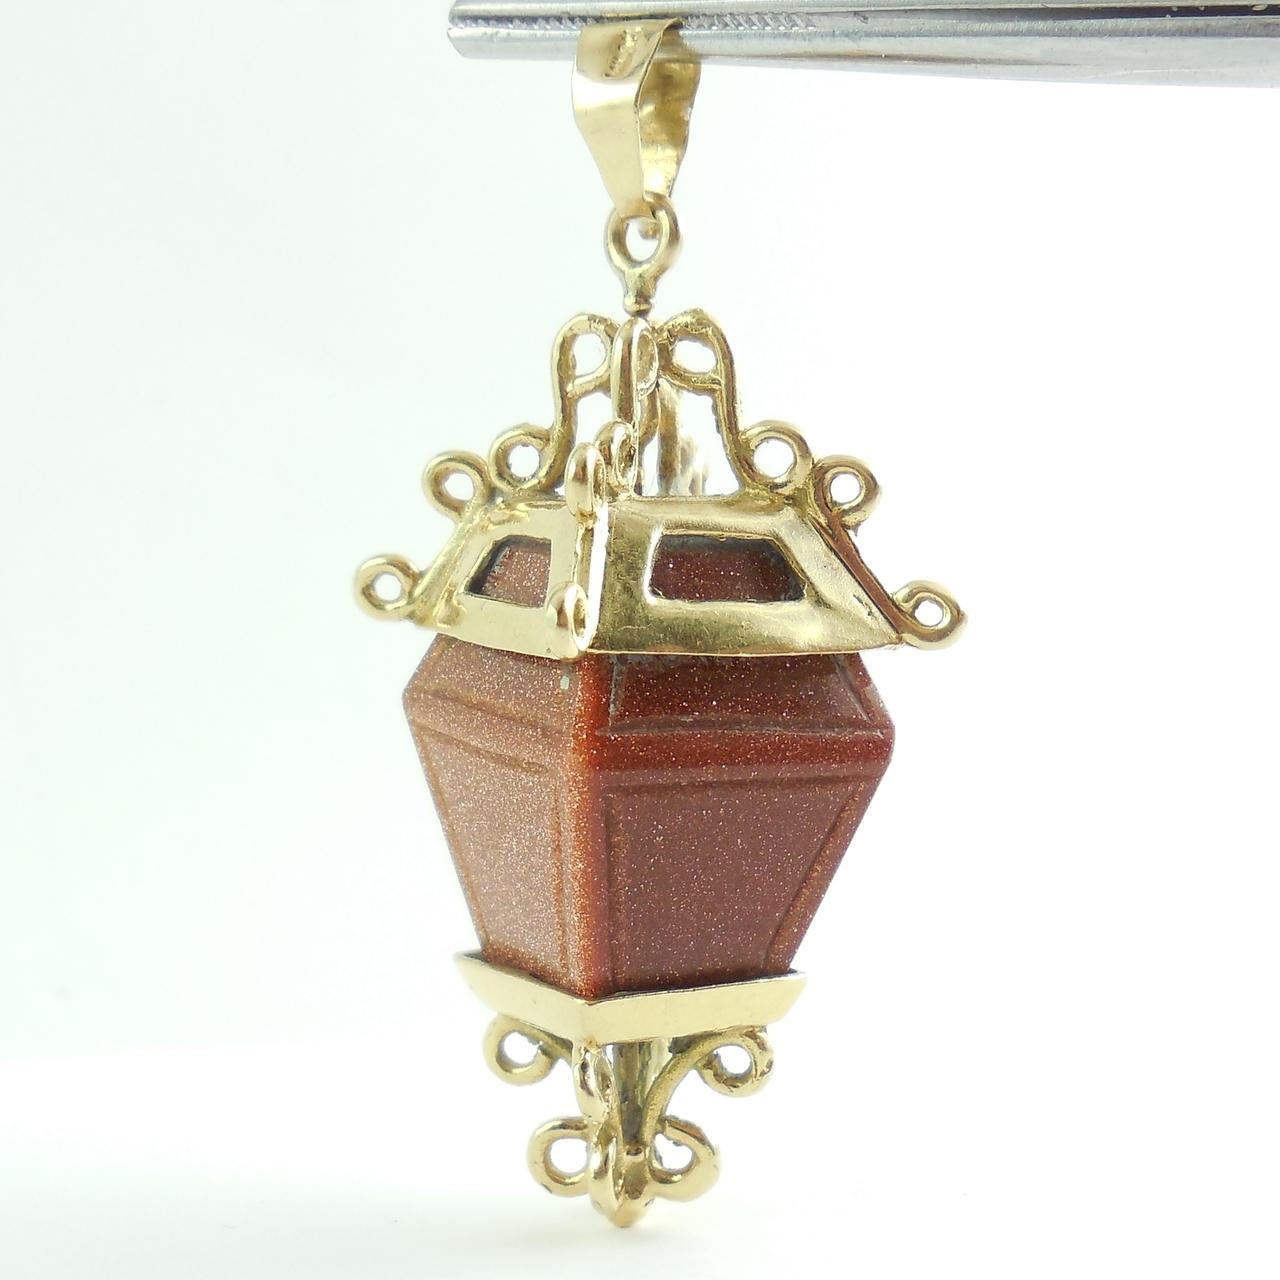 Large Vintage 14k Gold Carved Goldstone Street Lamp Pendant Charm Restore Repurpose